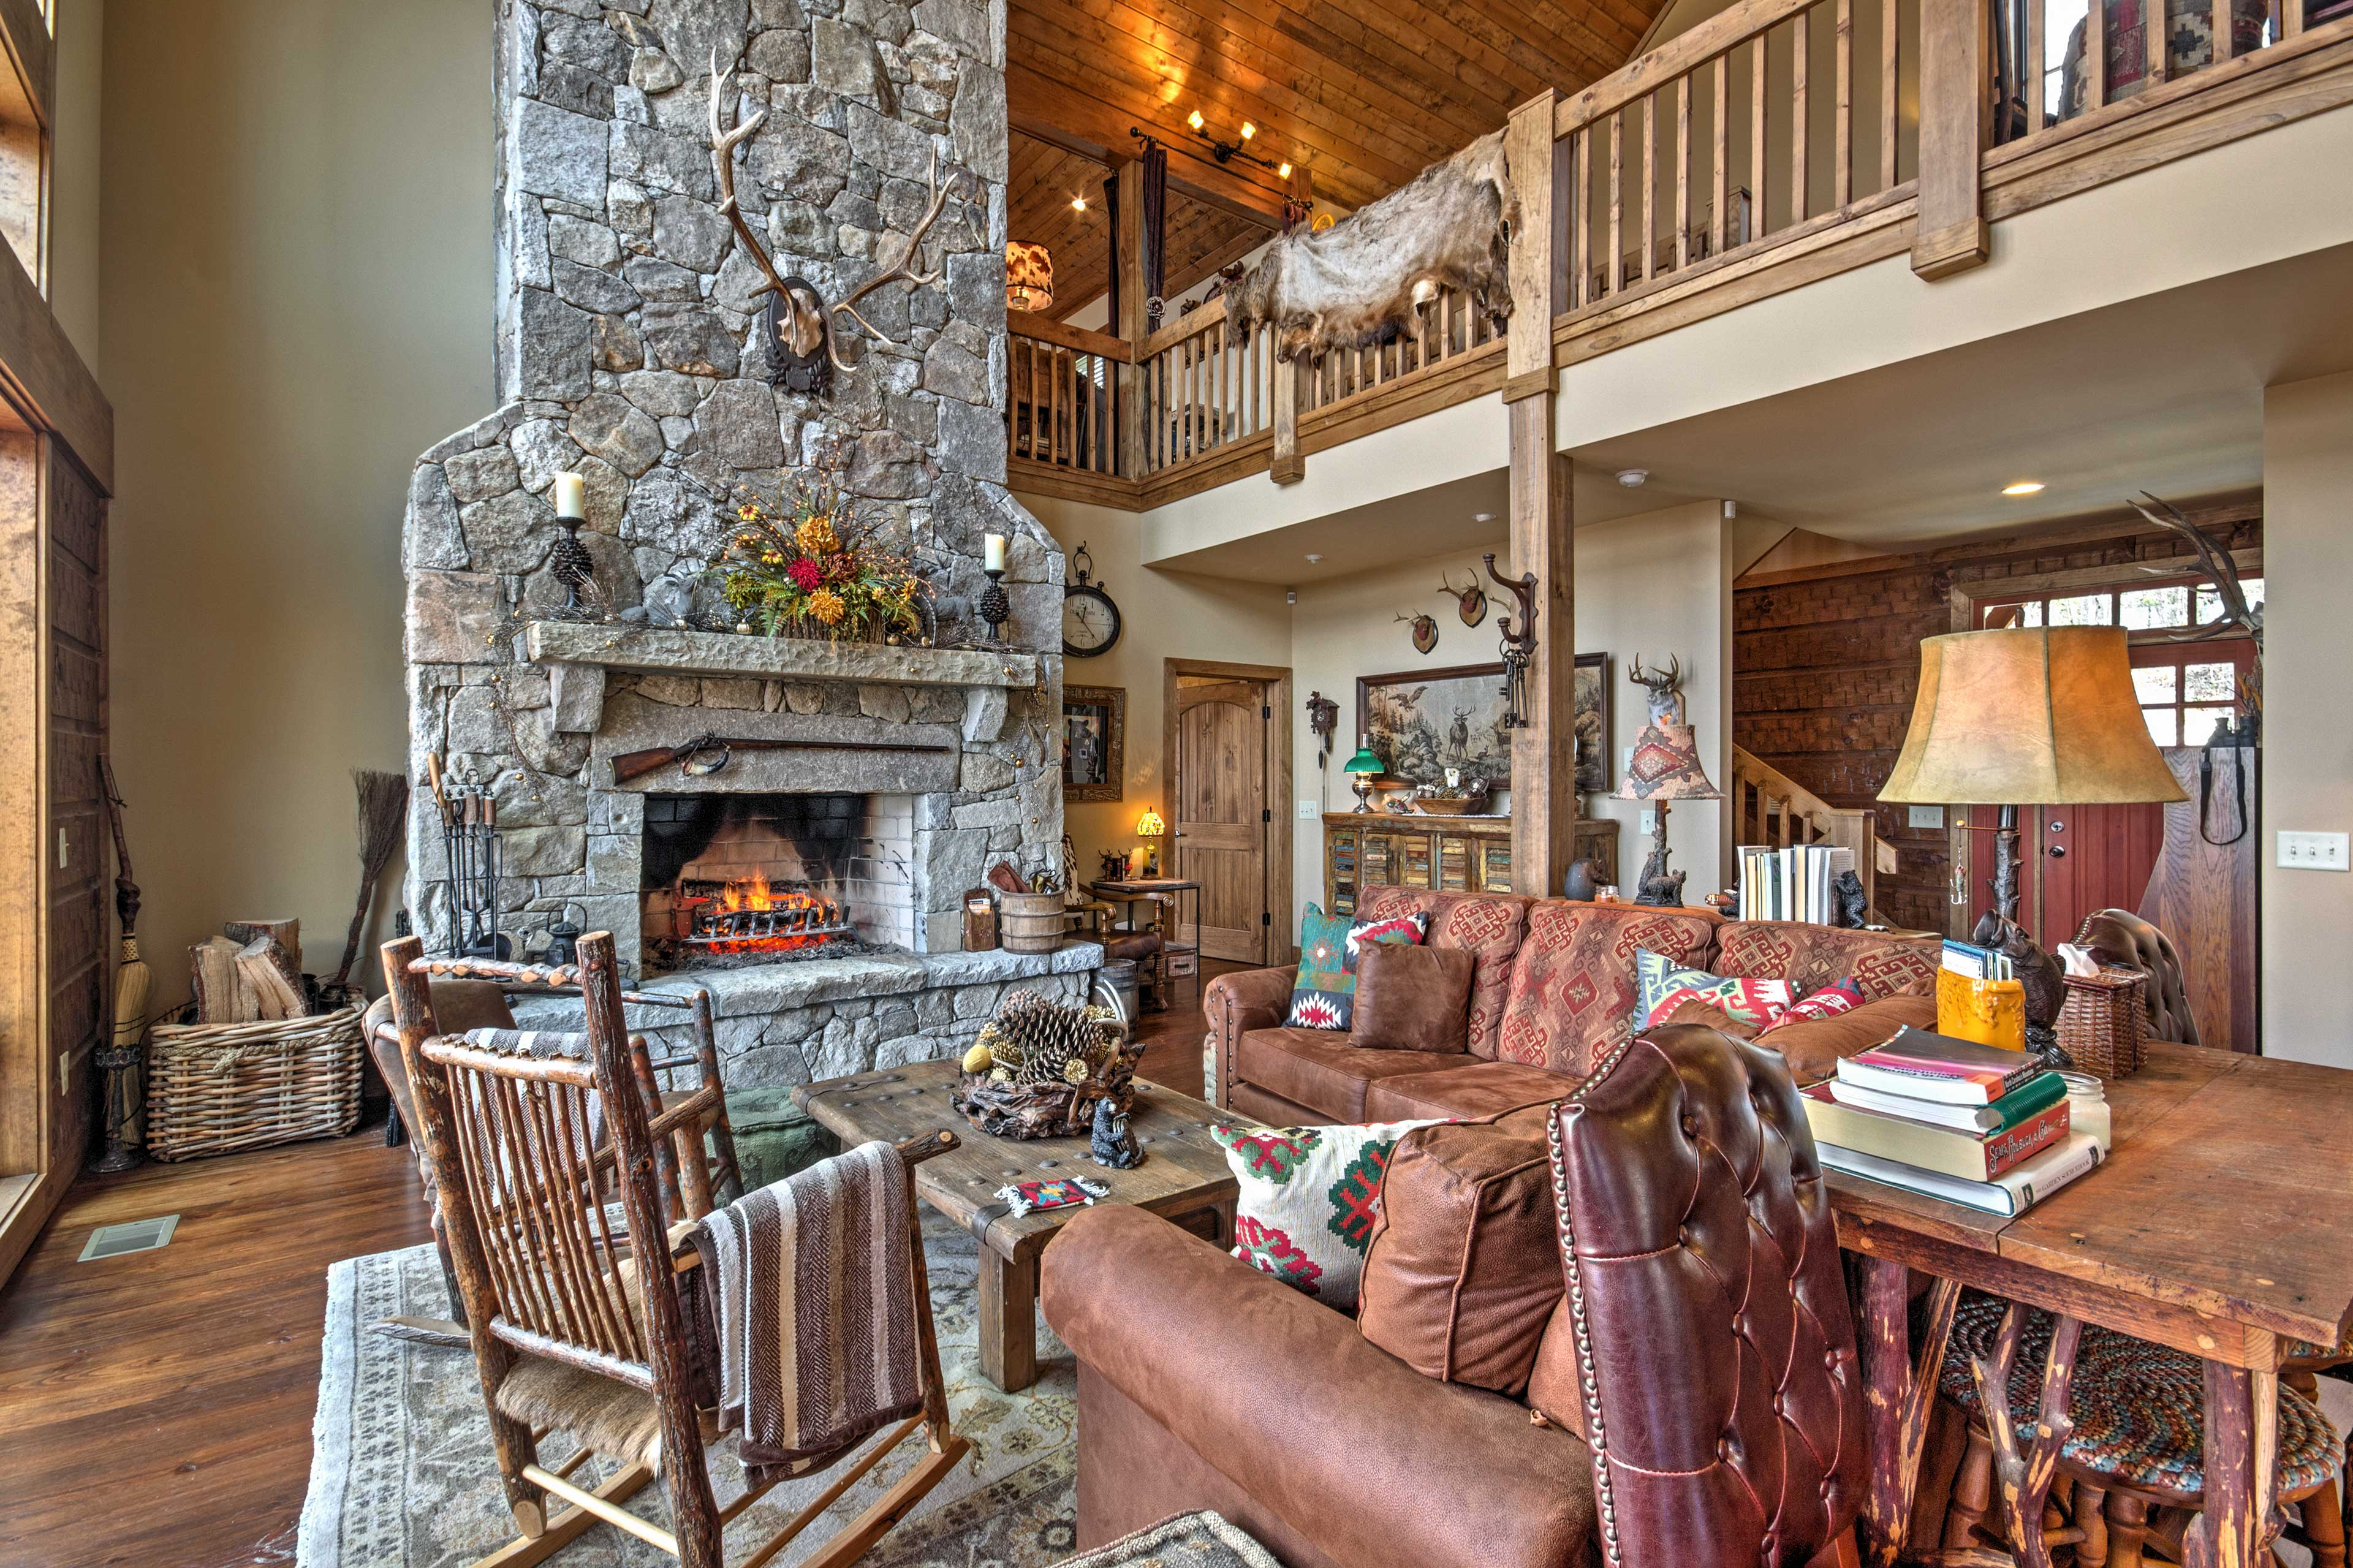 Lounge in the warmth of the wood-burning fireplace in the main living area.